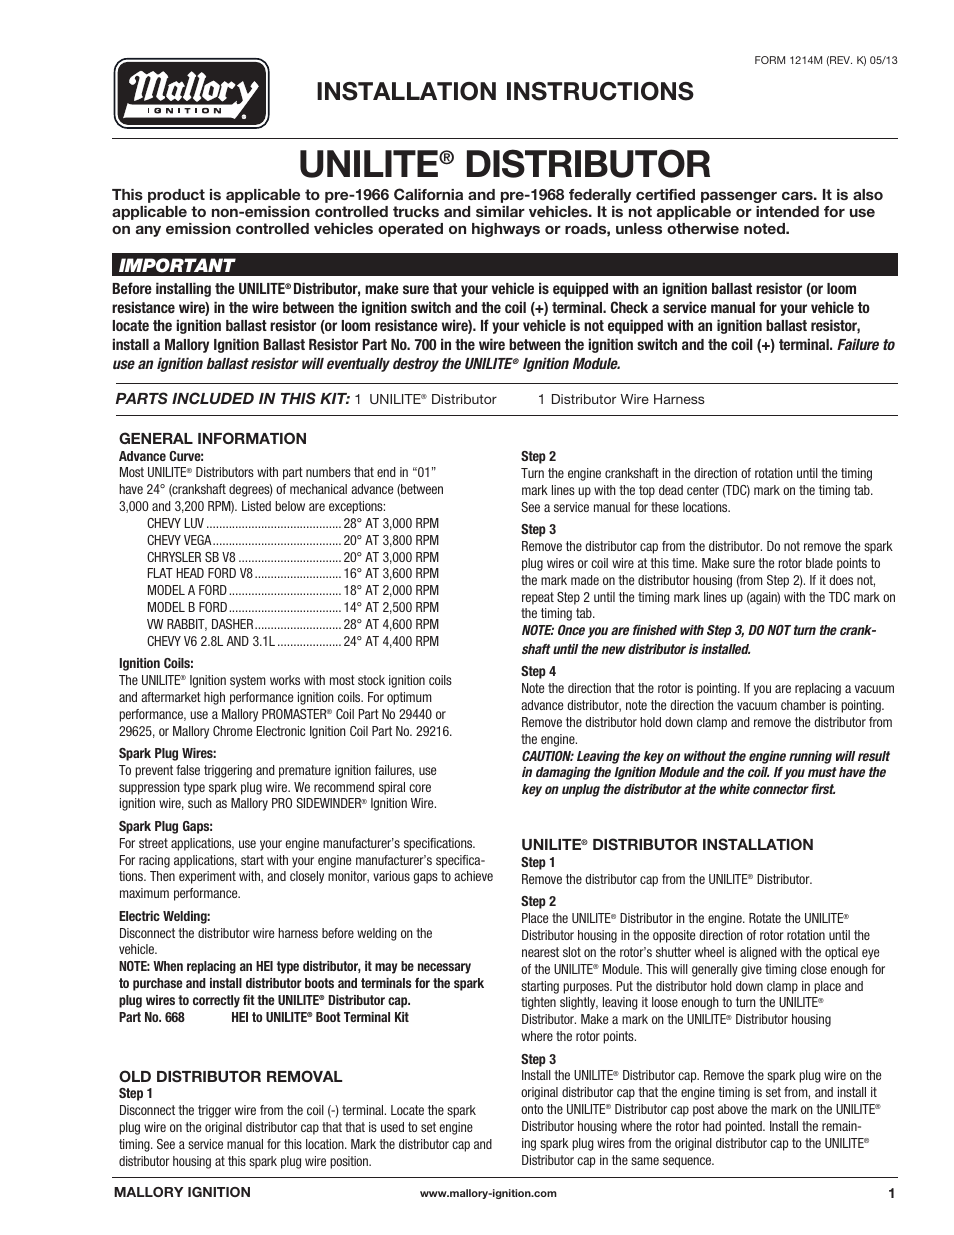 mallory ignition mallory unilite distributor 37_38_45_47 user manual | 4  pages